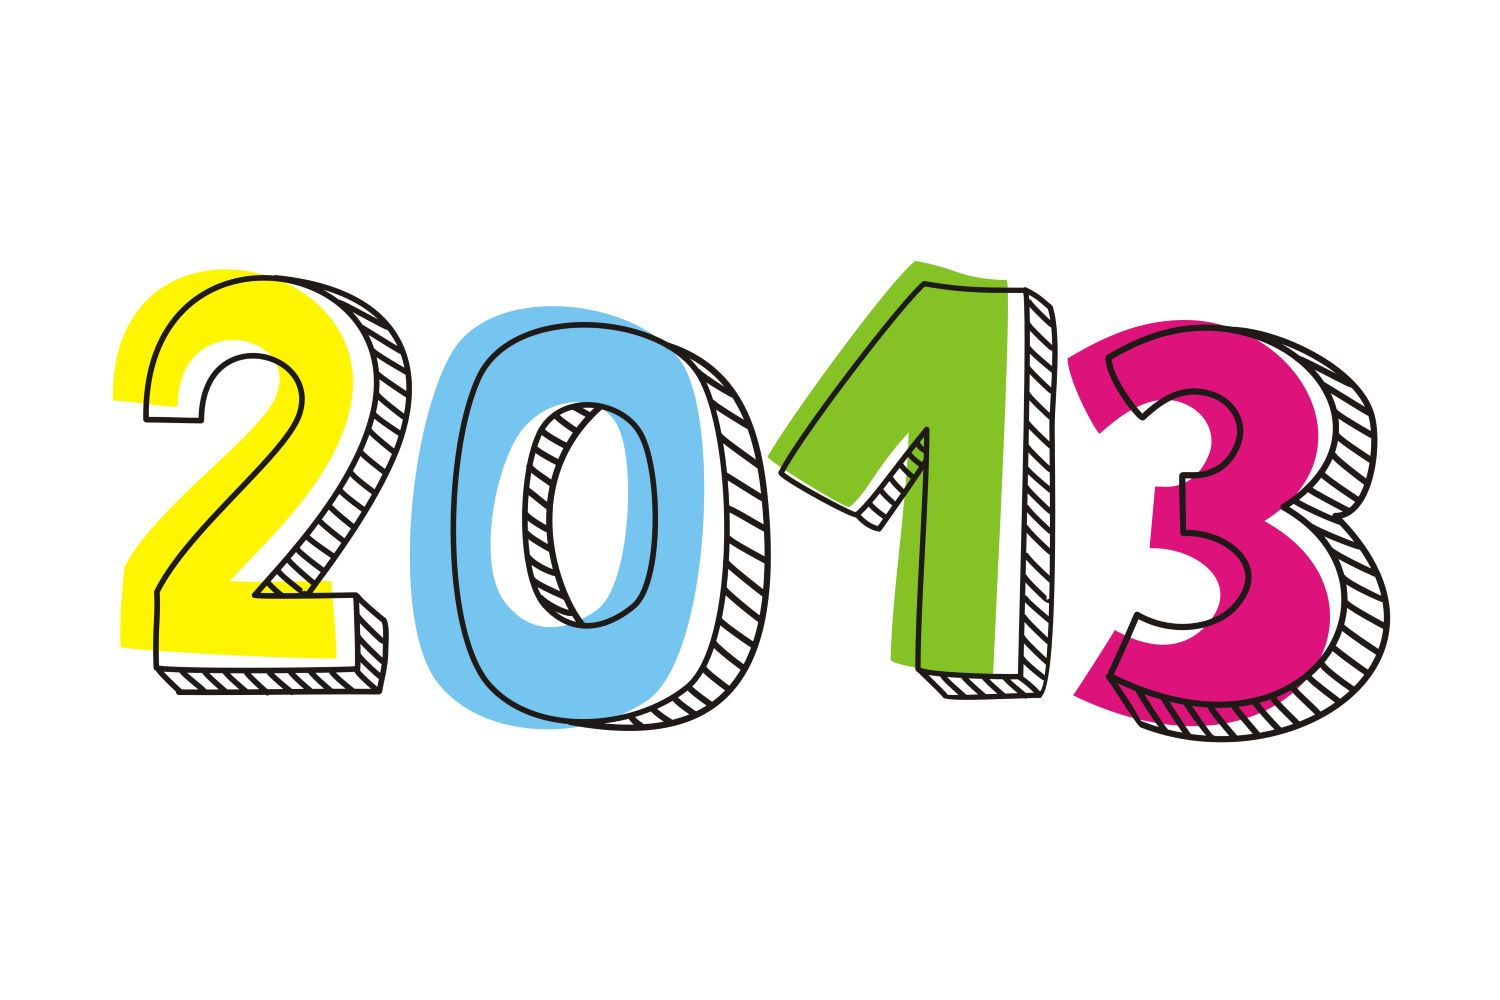 IIM's Top 13 Insights from 2013 (Part 2 of 3)